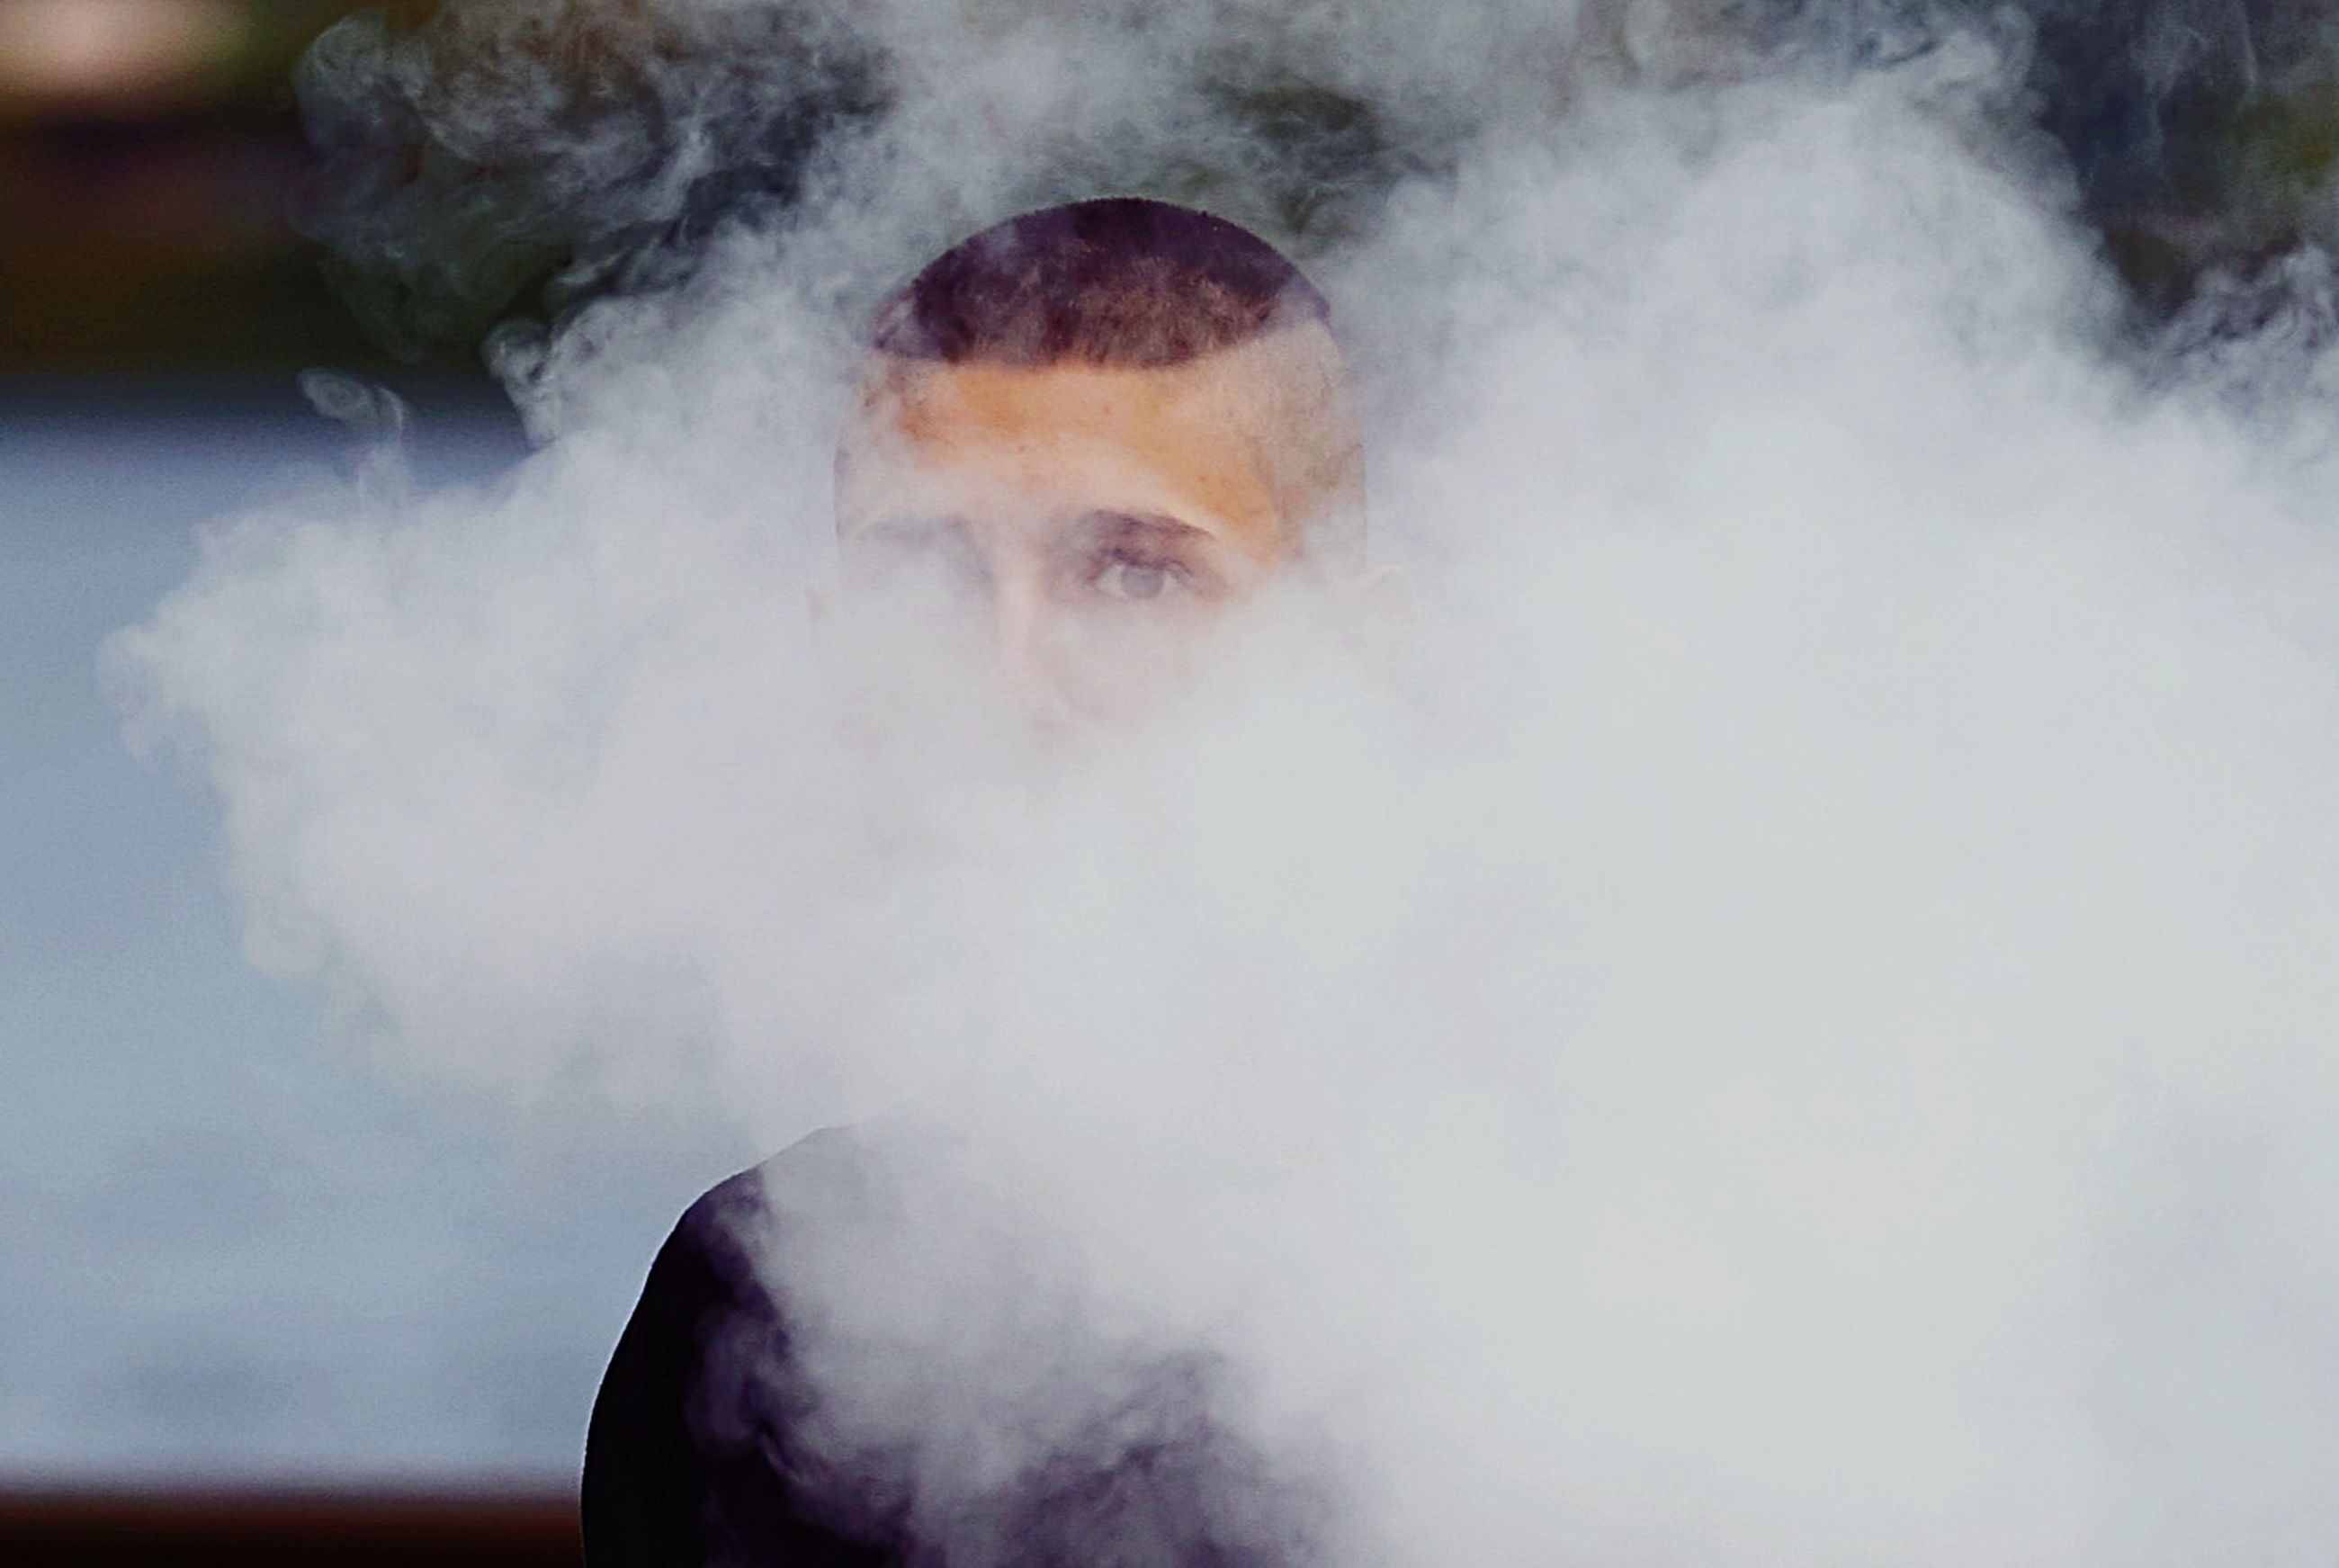 smoke - physical structure, one person, portrait, headshot, real people, front view, looking at camera, warning sign, lifestyles, smoking issues, leisure activity, young adult, sign, smoking - activity, bad habit, activity, pollution, obscured face